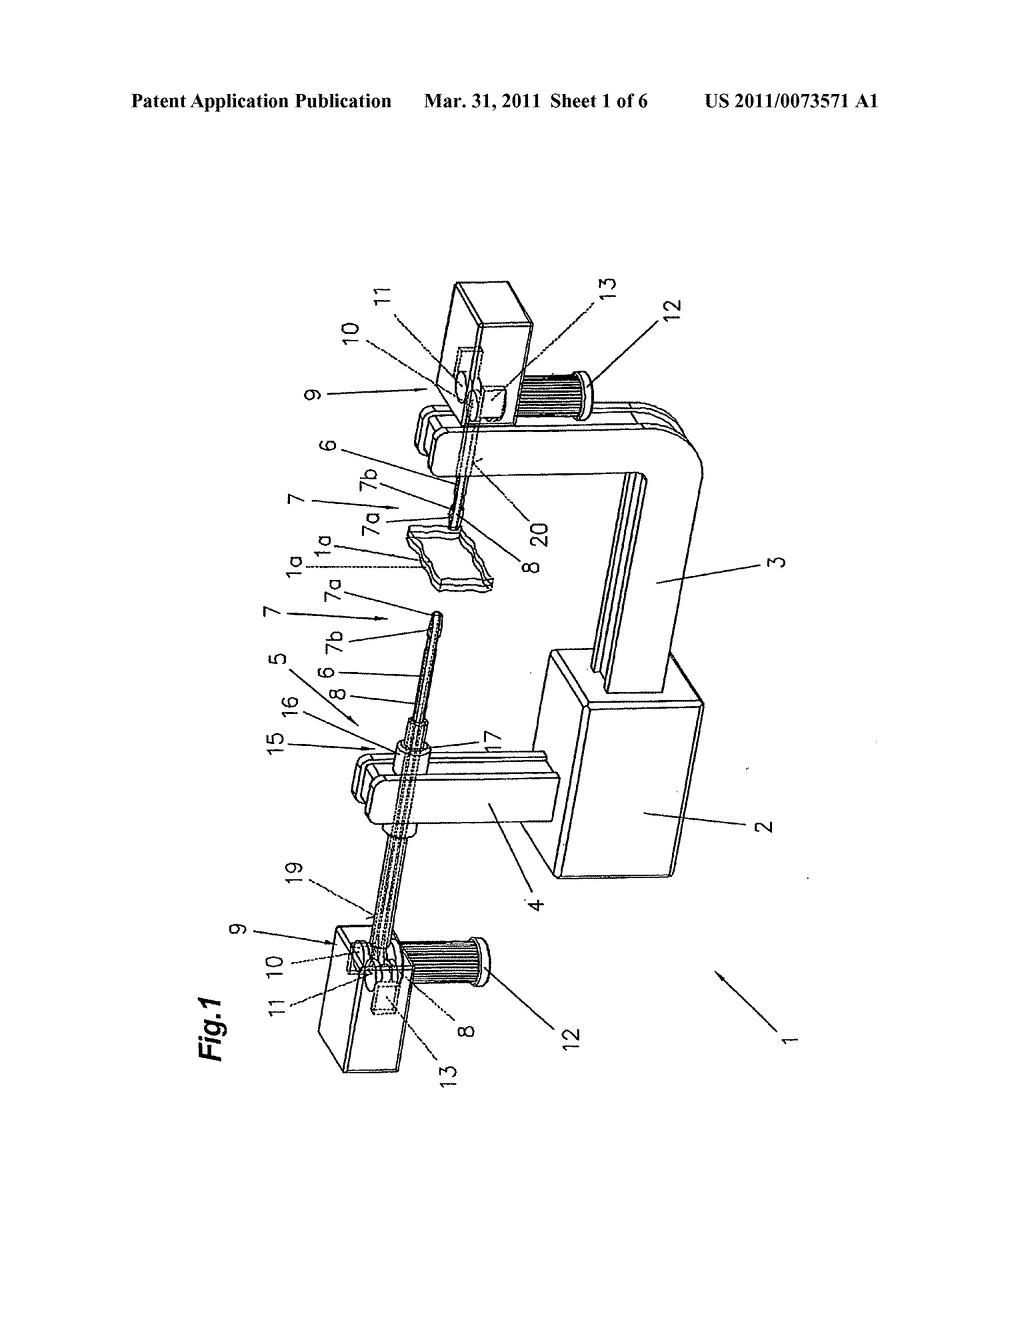 Diagram Of Spot Welding Schematic Diagrams Wiring